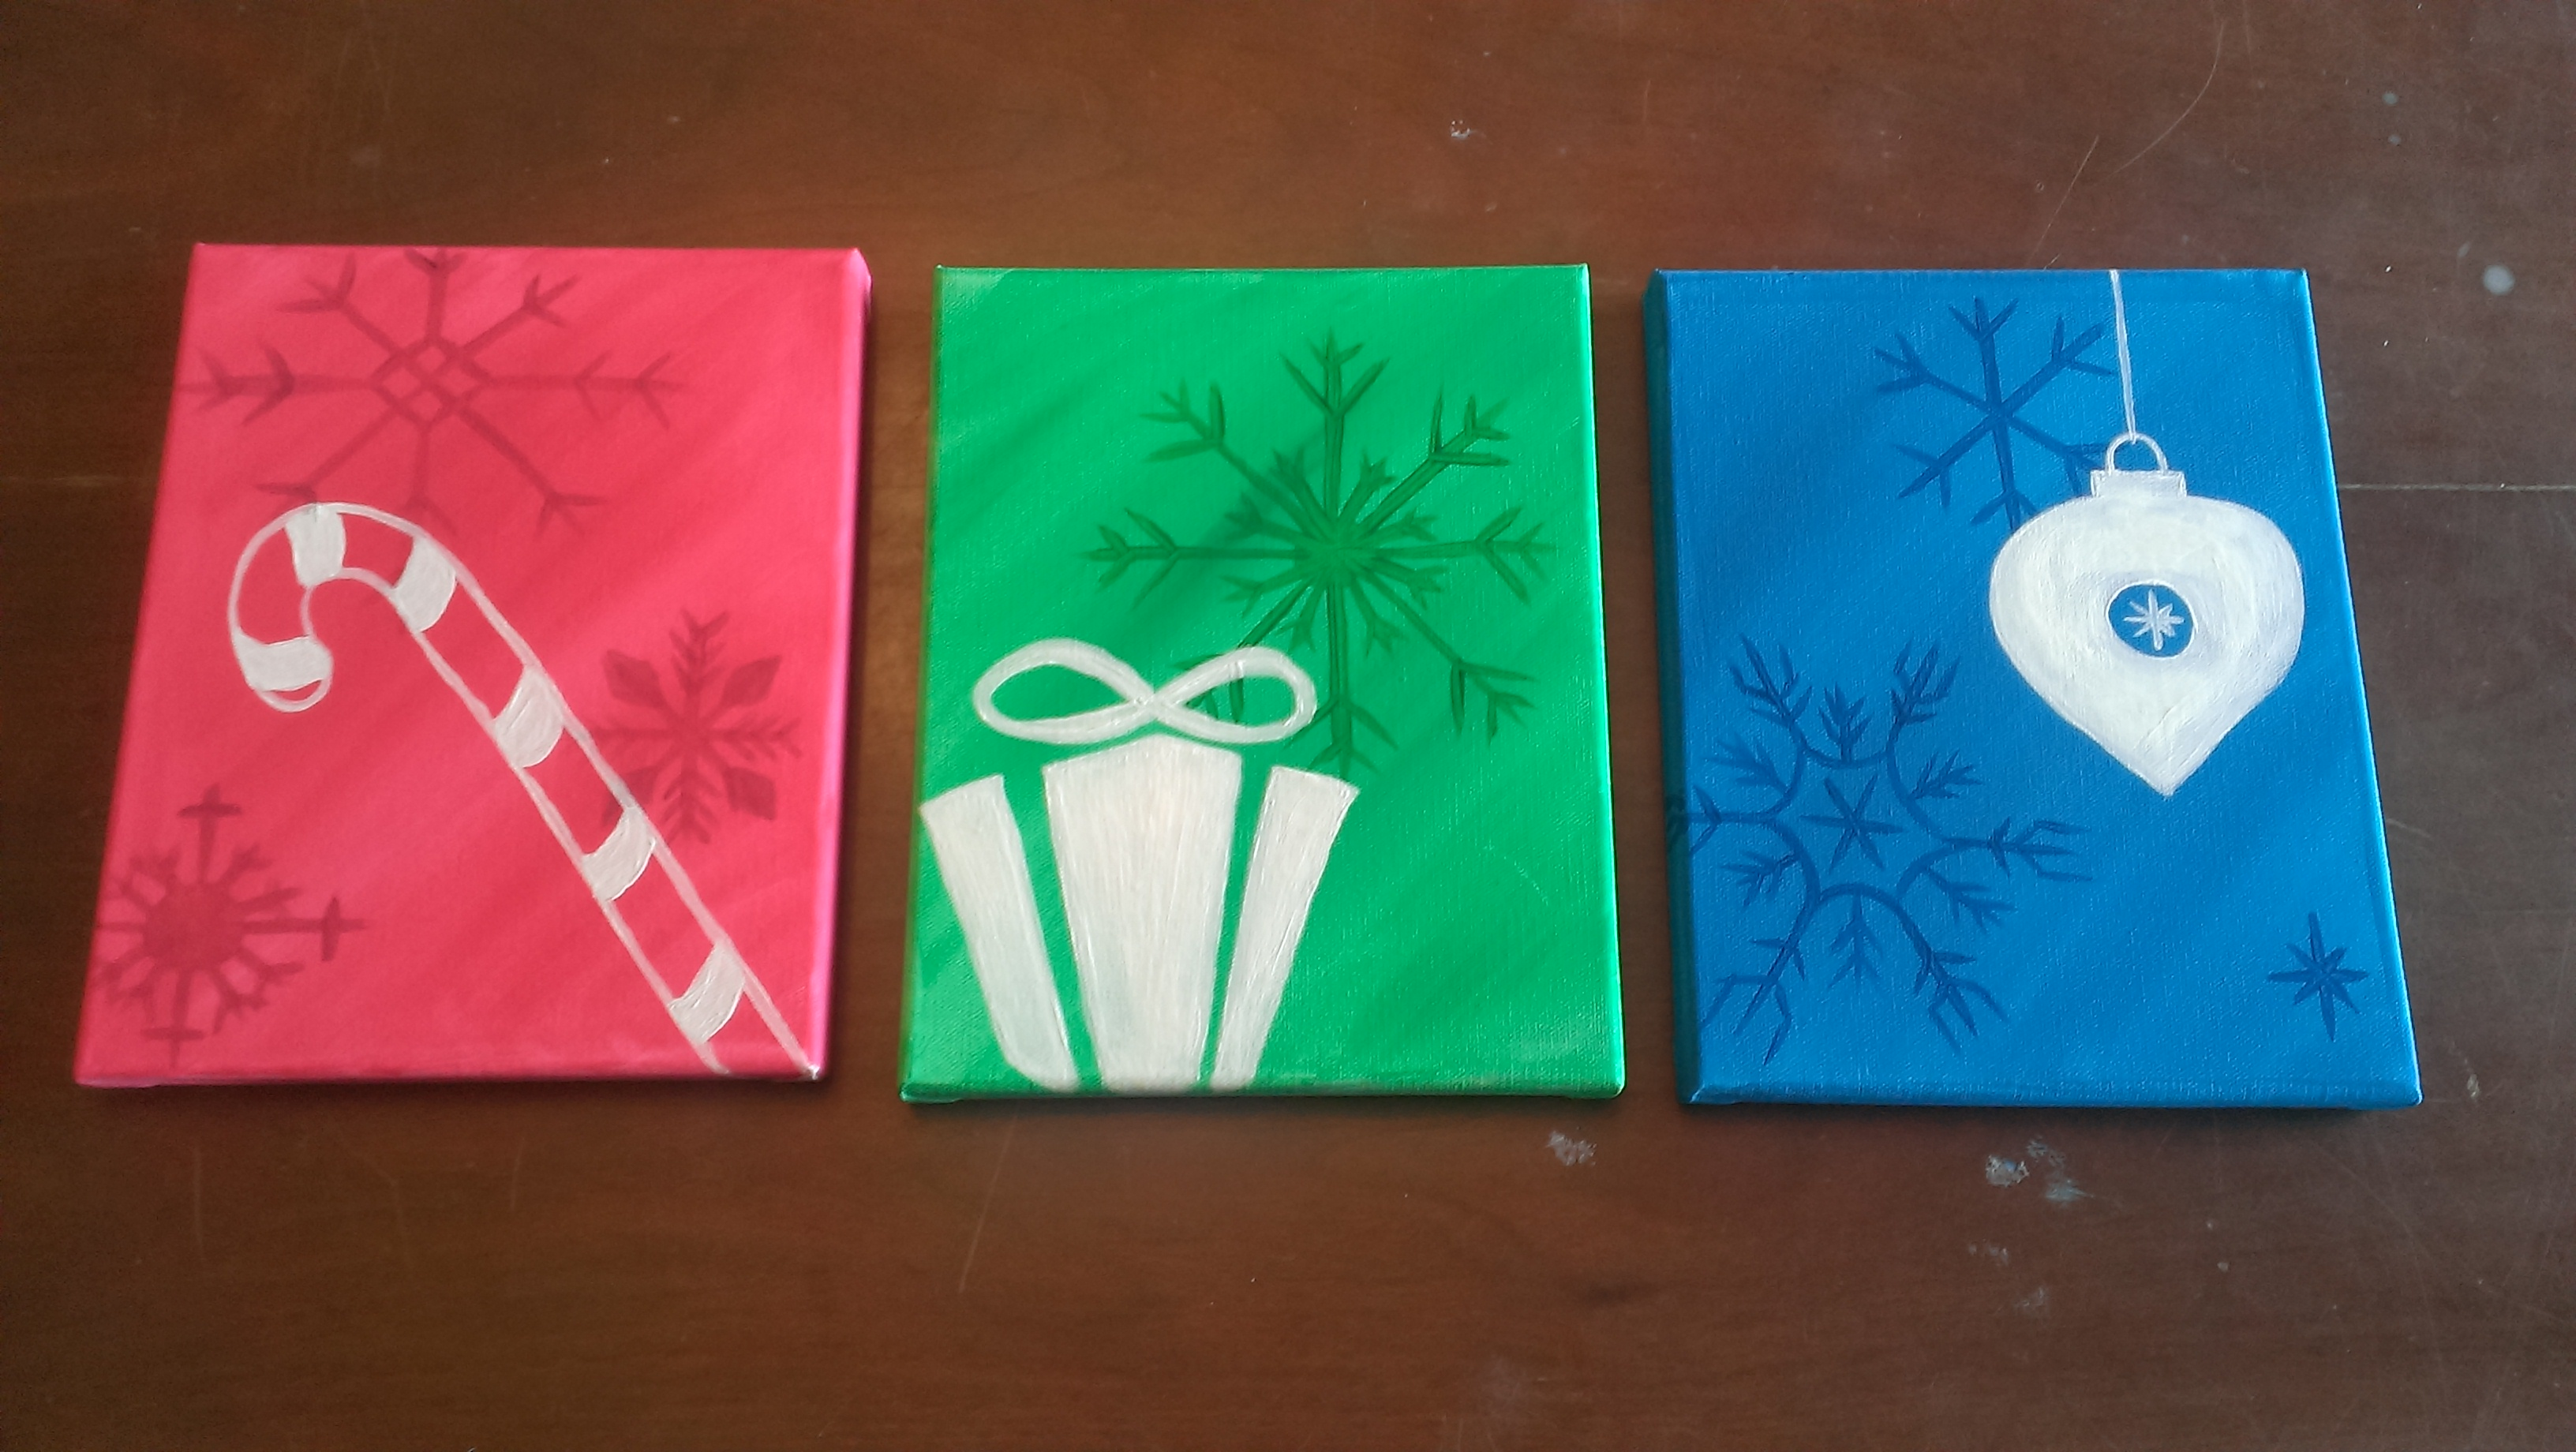 Holiday Cheer ($35 for all 3)